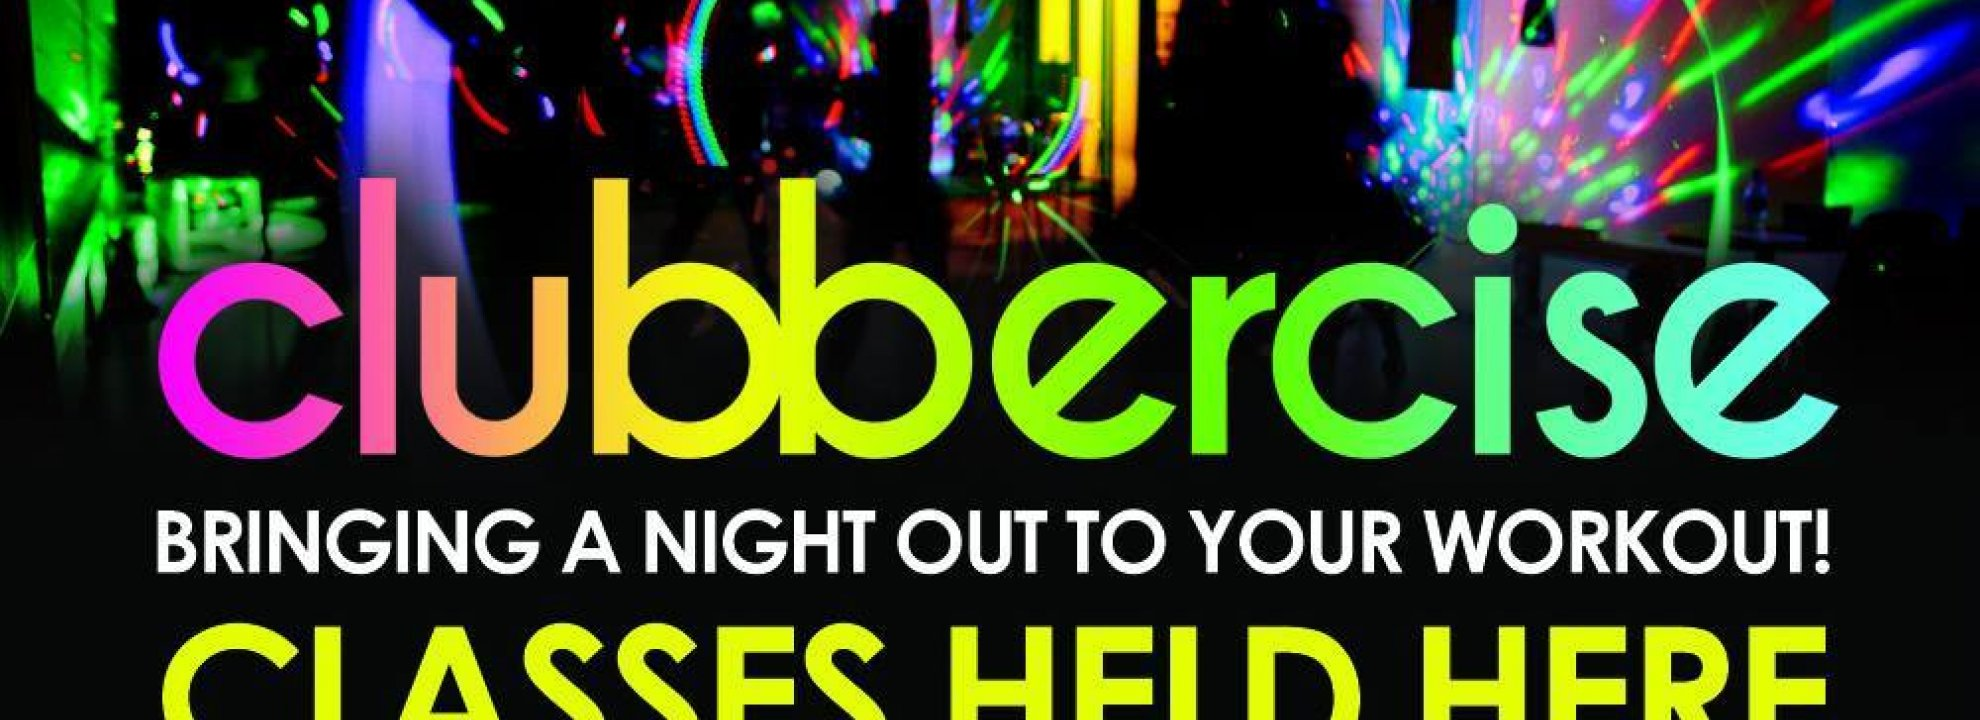 Clubbercise Banner